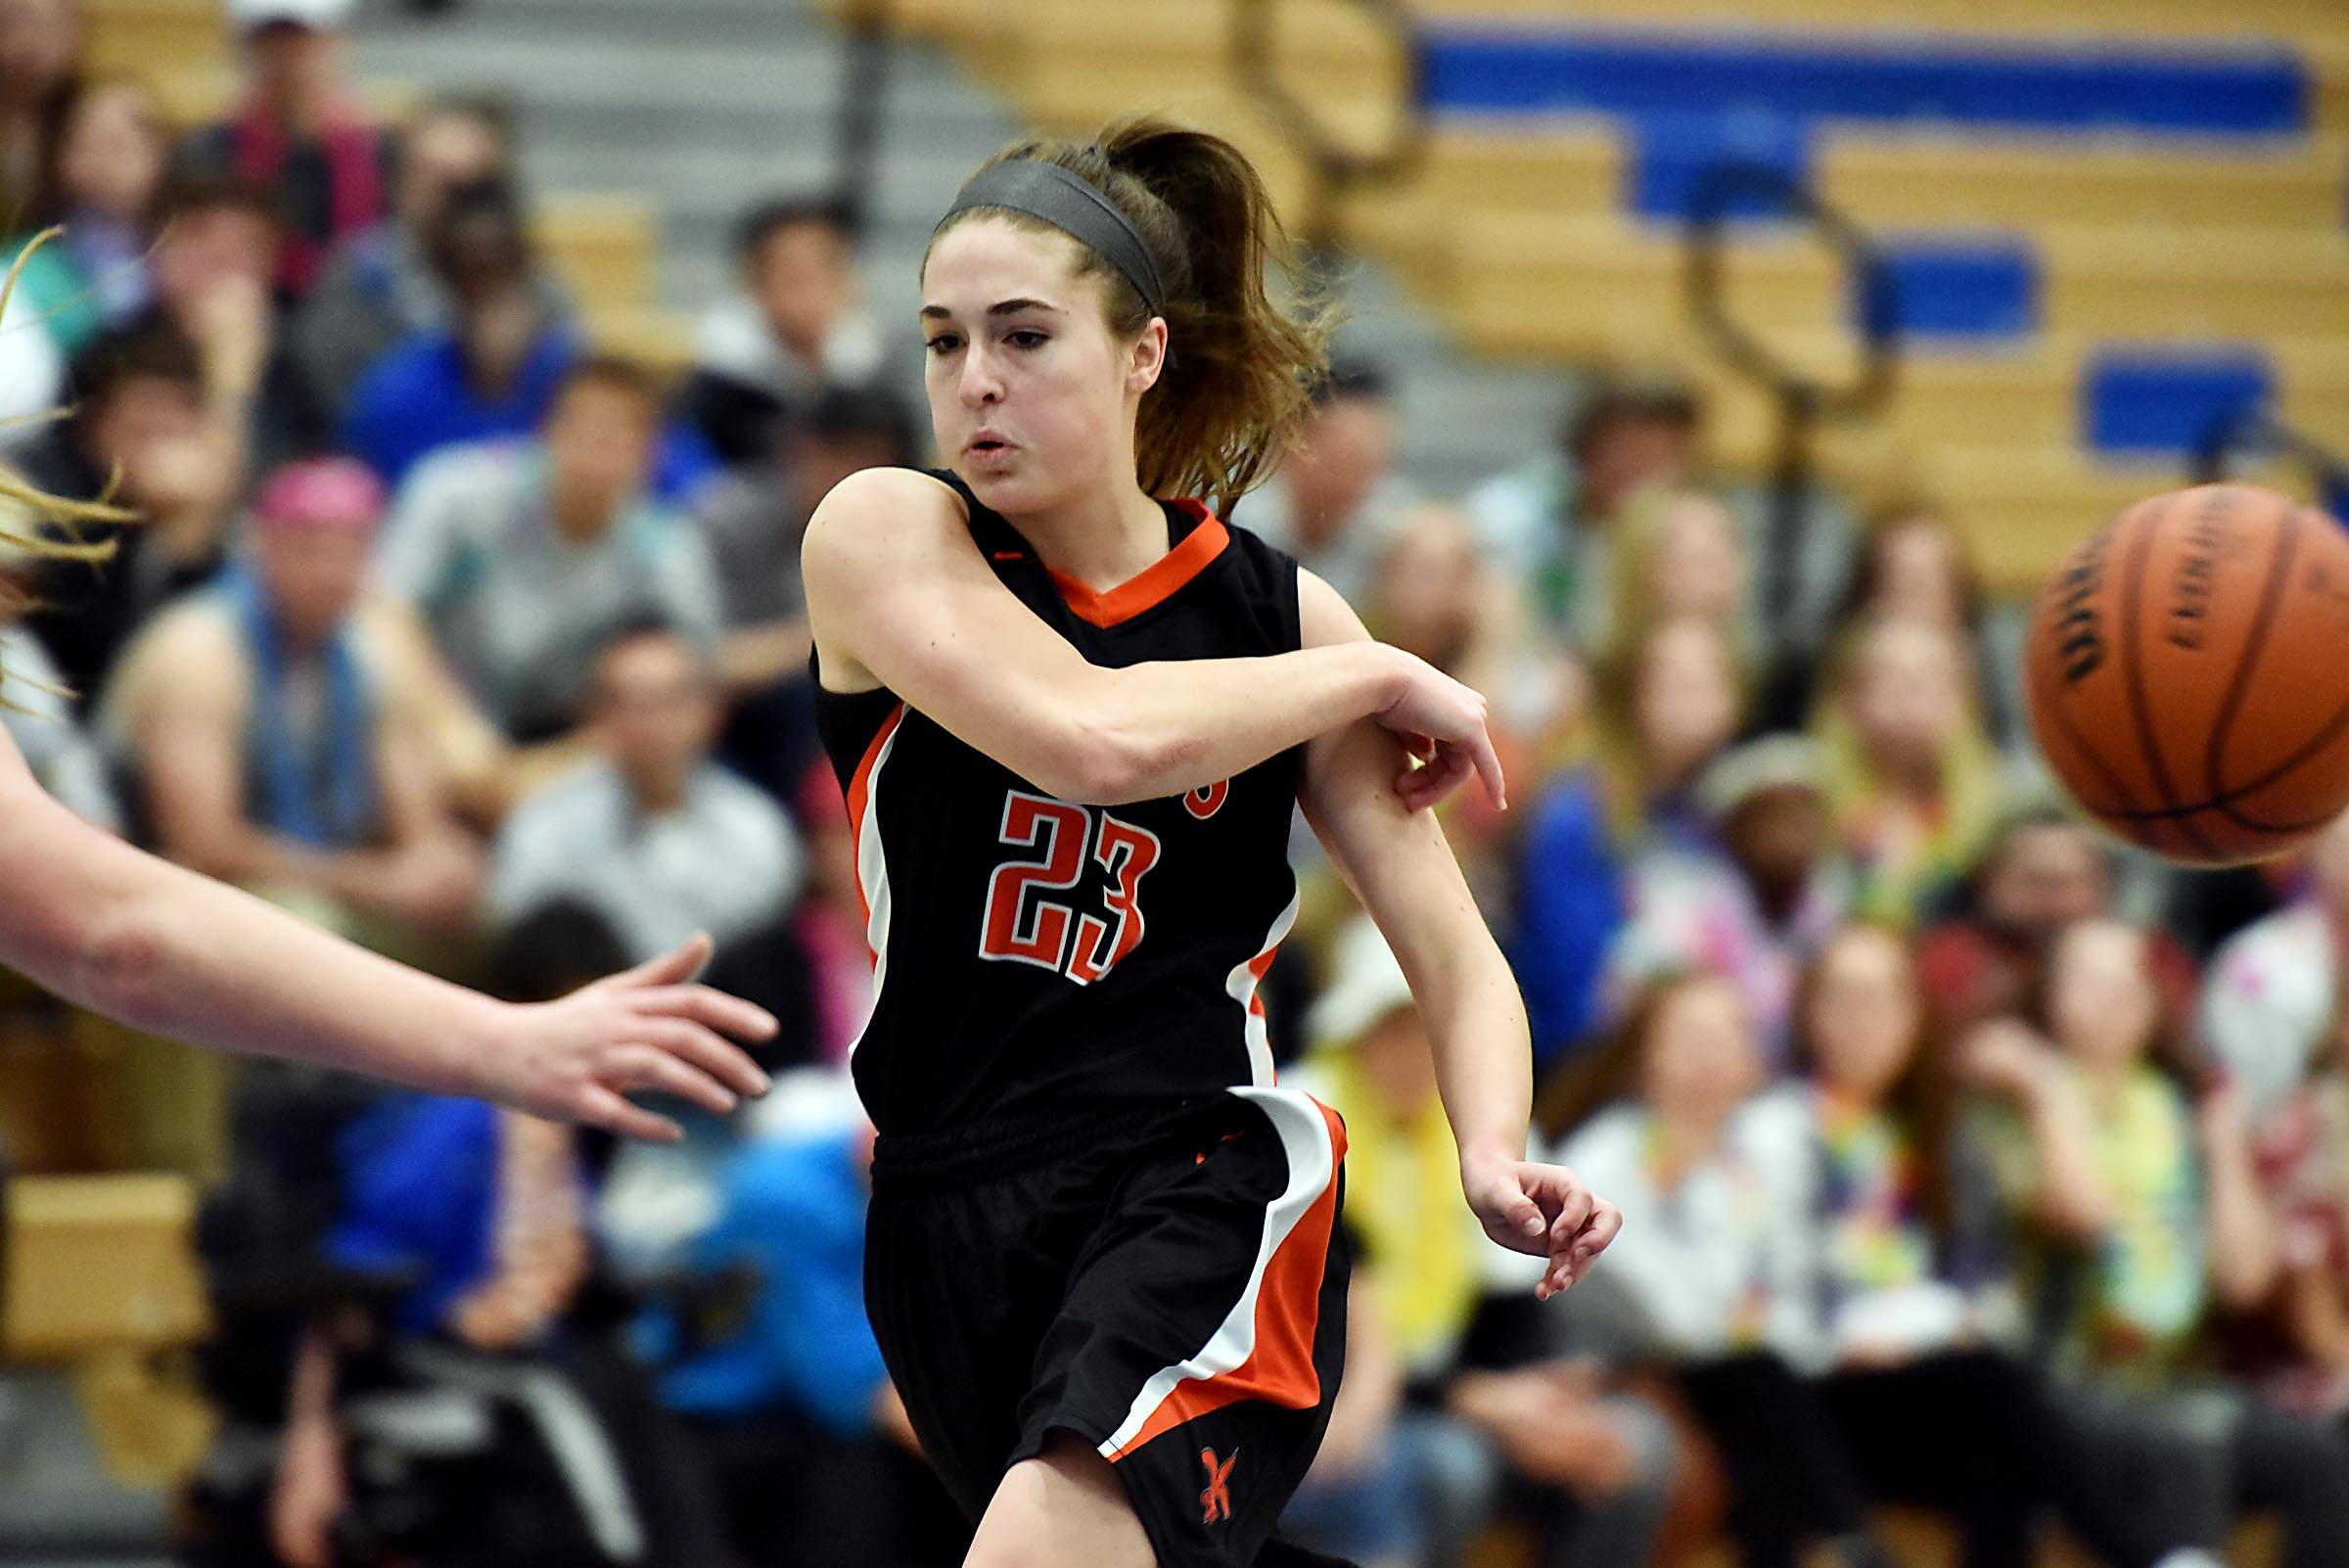 Images: St. Charles North vs. St. Charles East, girls basketball